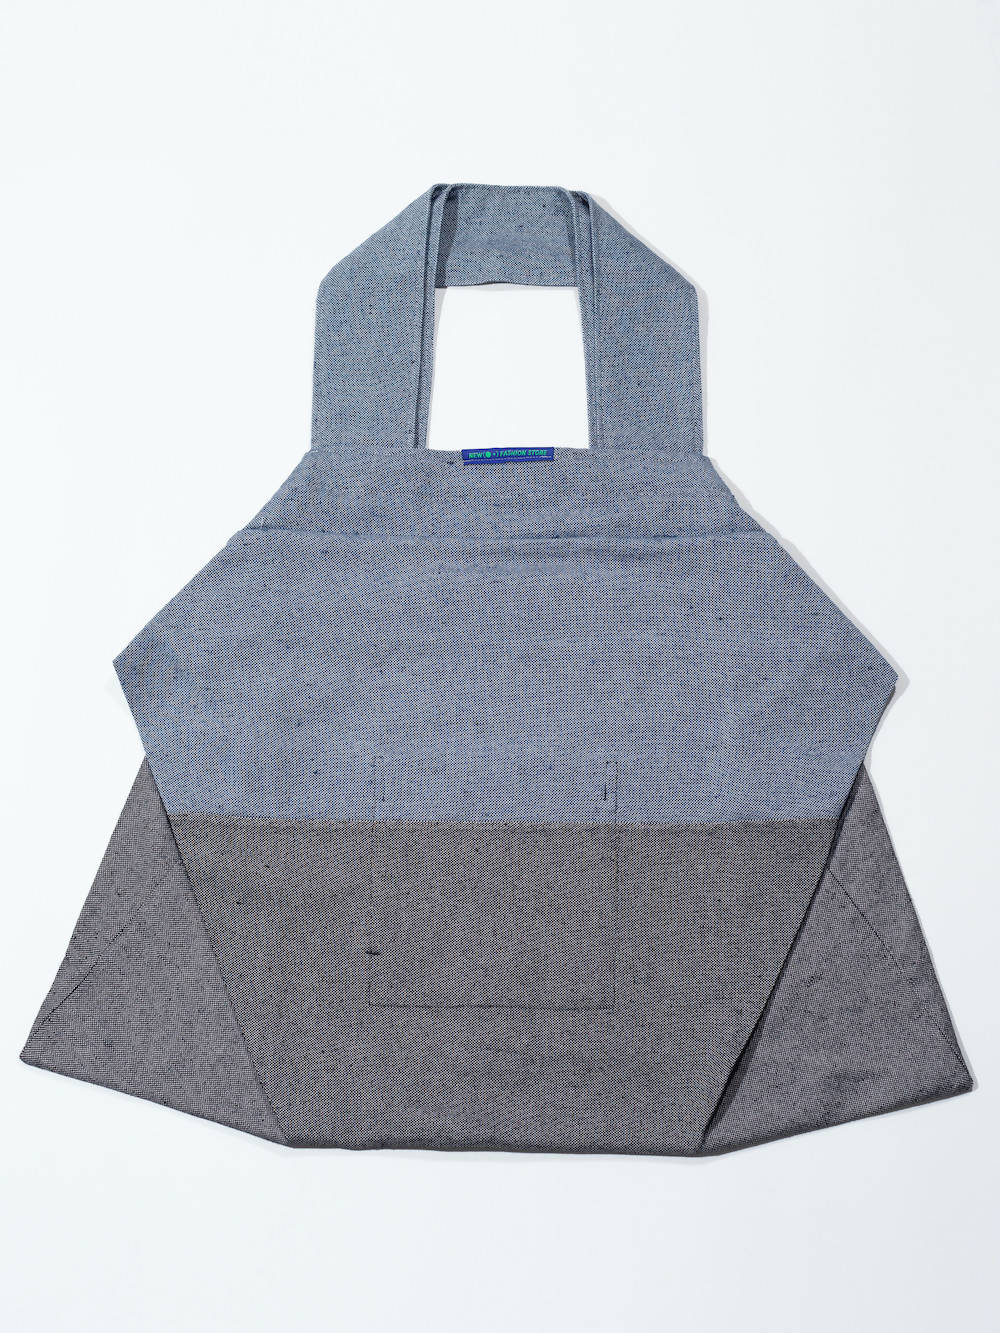 'From Scratch' Bag Denim Dark